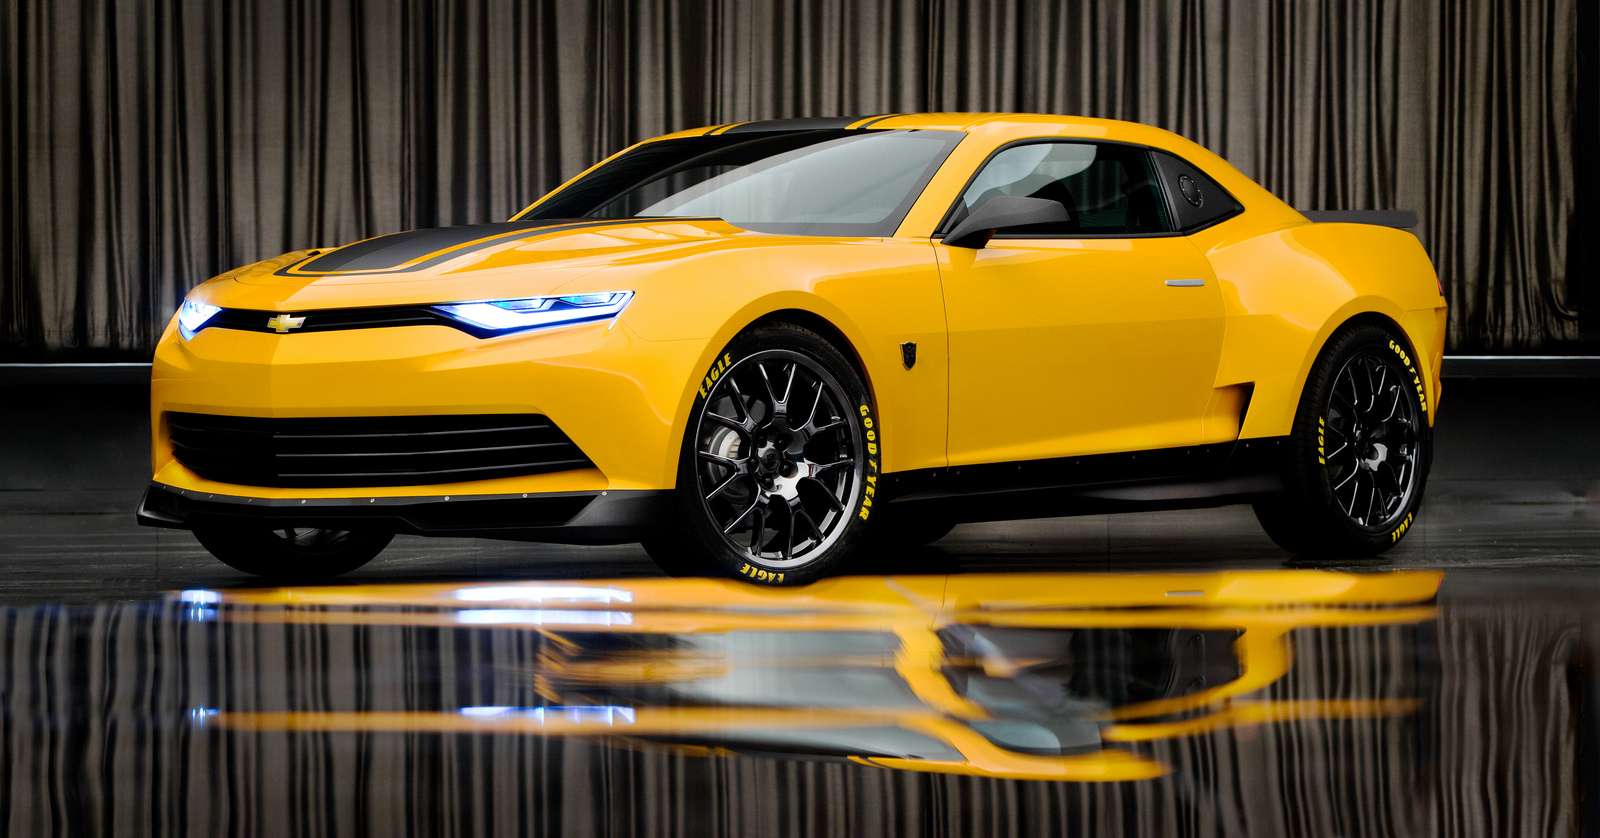 Transformers 4 Bumblebee Is The 2014 Concept Camaro